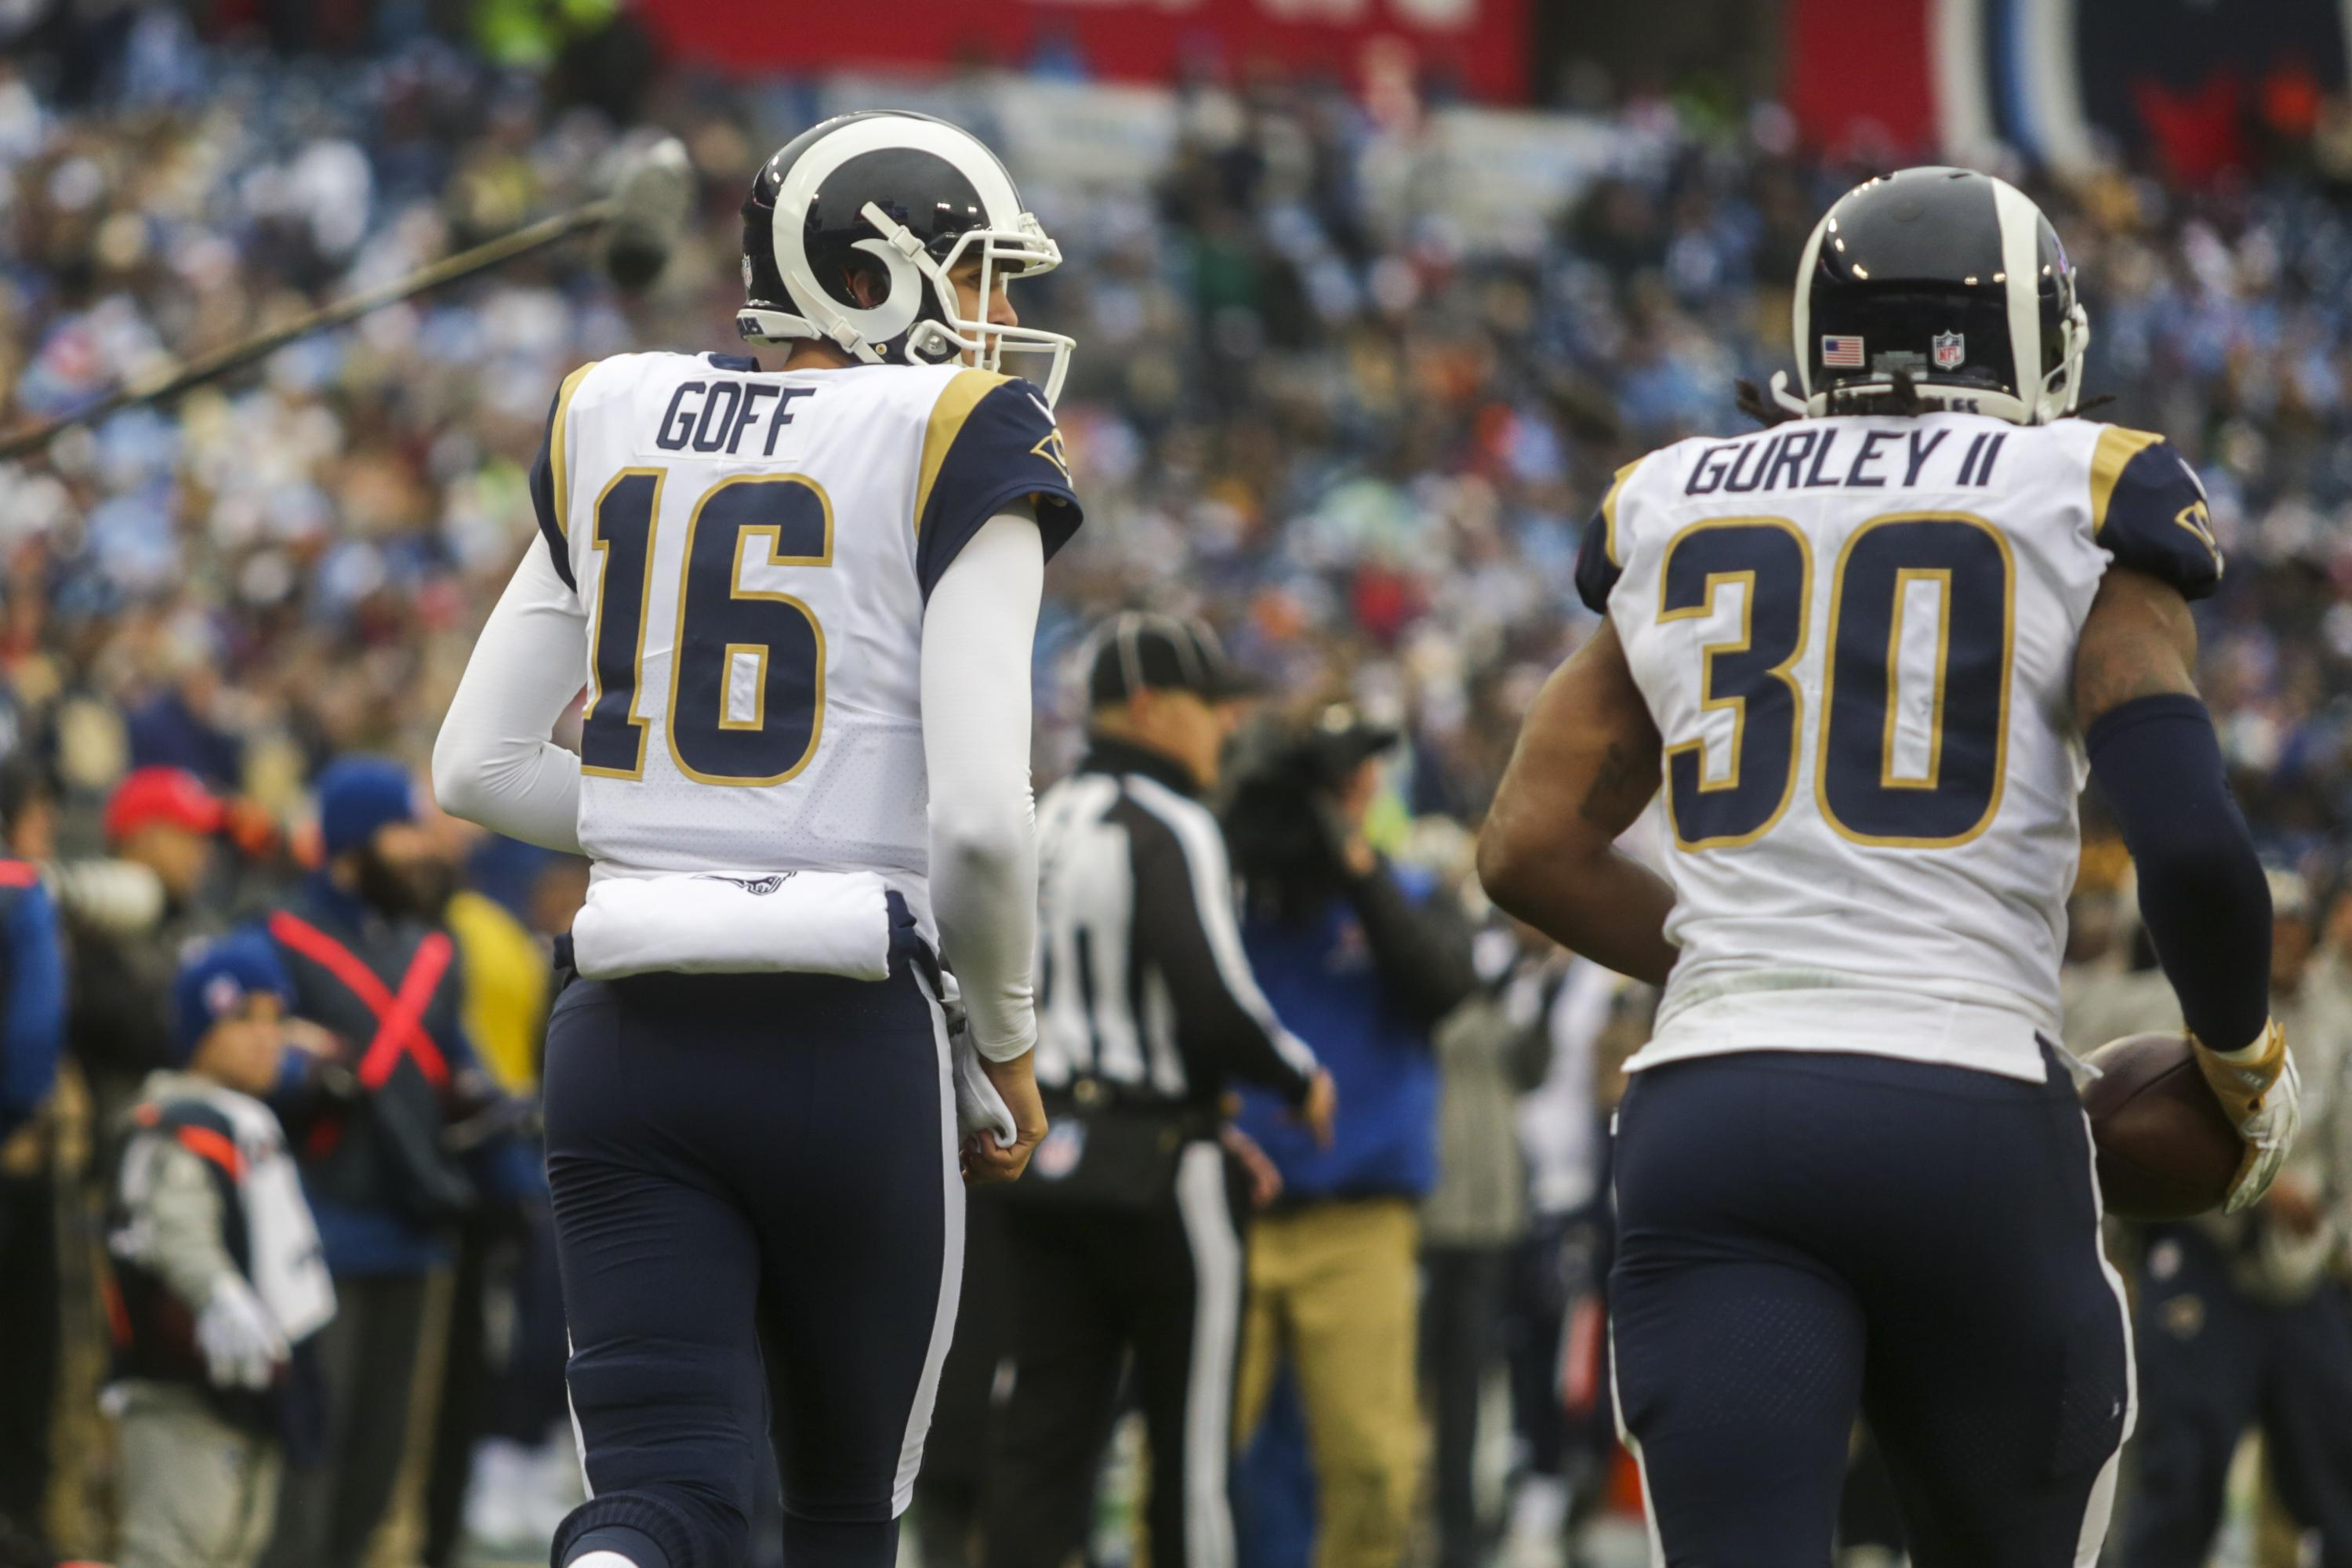 Quarterback Jared Goff and running back Todd Gurley II of the Los Angeles Rams.